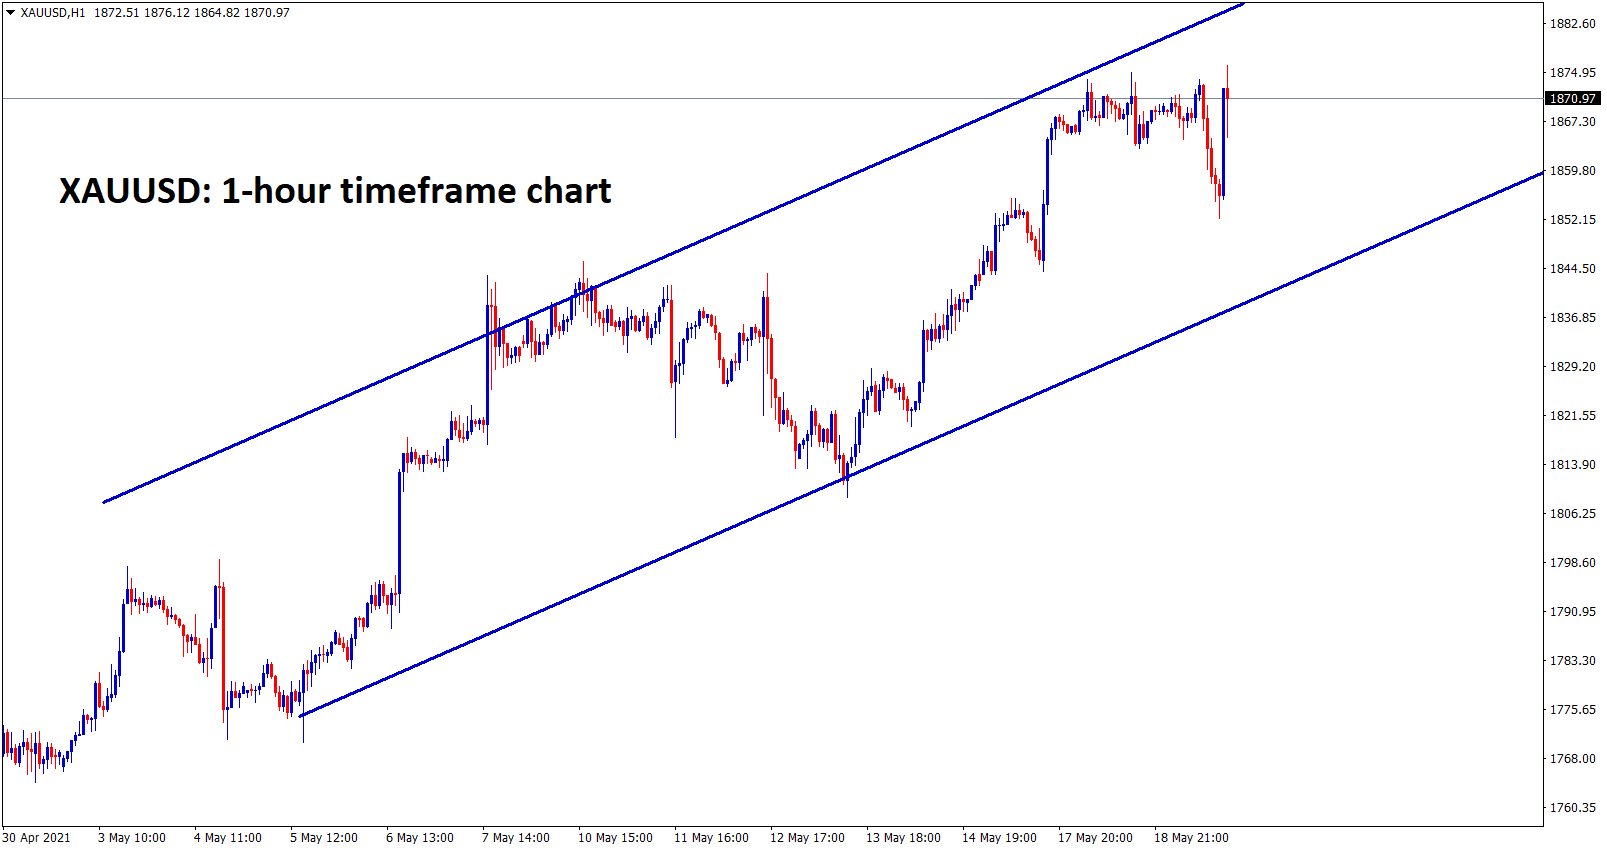 Gold is moving in an Ascending hcannel uptrend wait for the channel breakout for bigger move on Gold